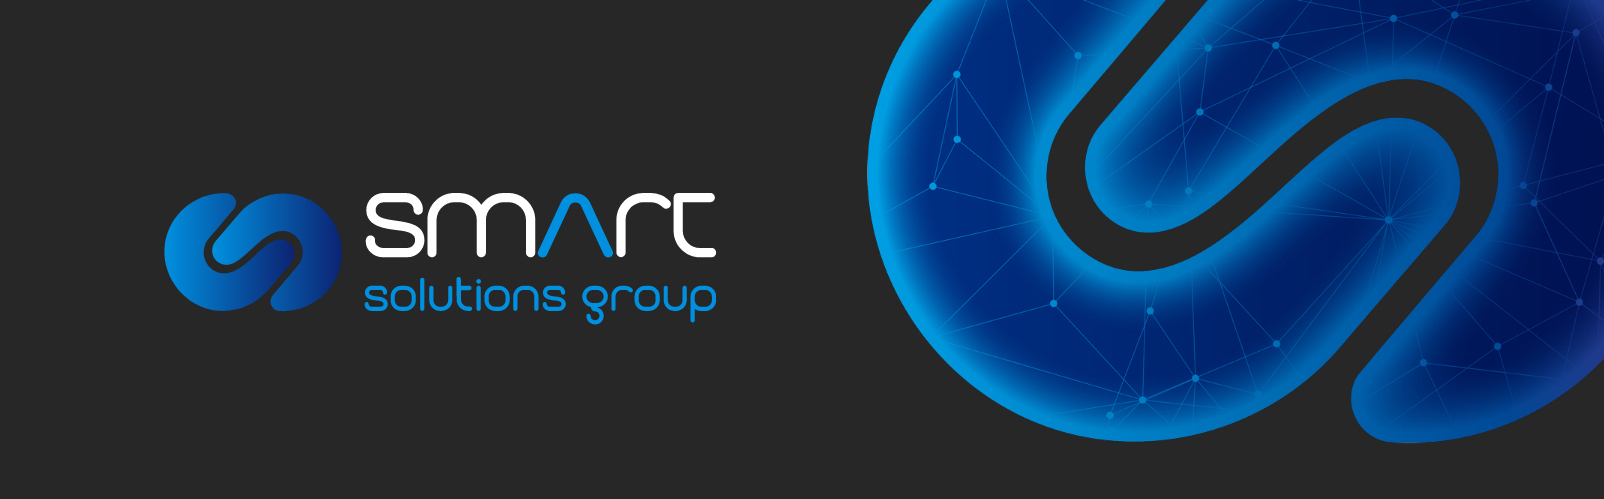 Smart Solutions Group Logo